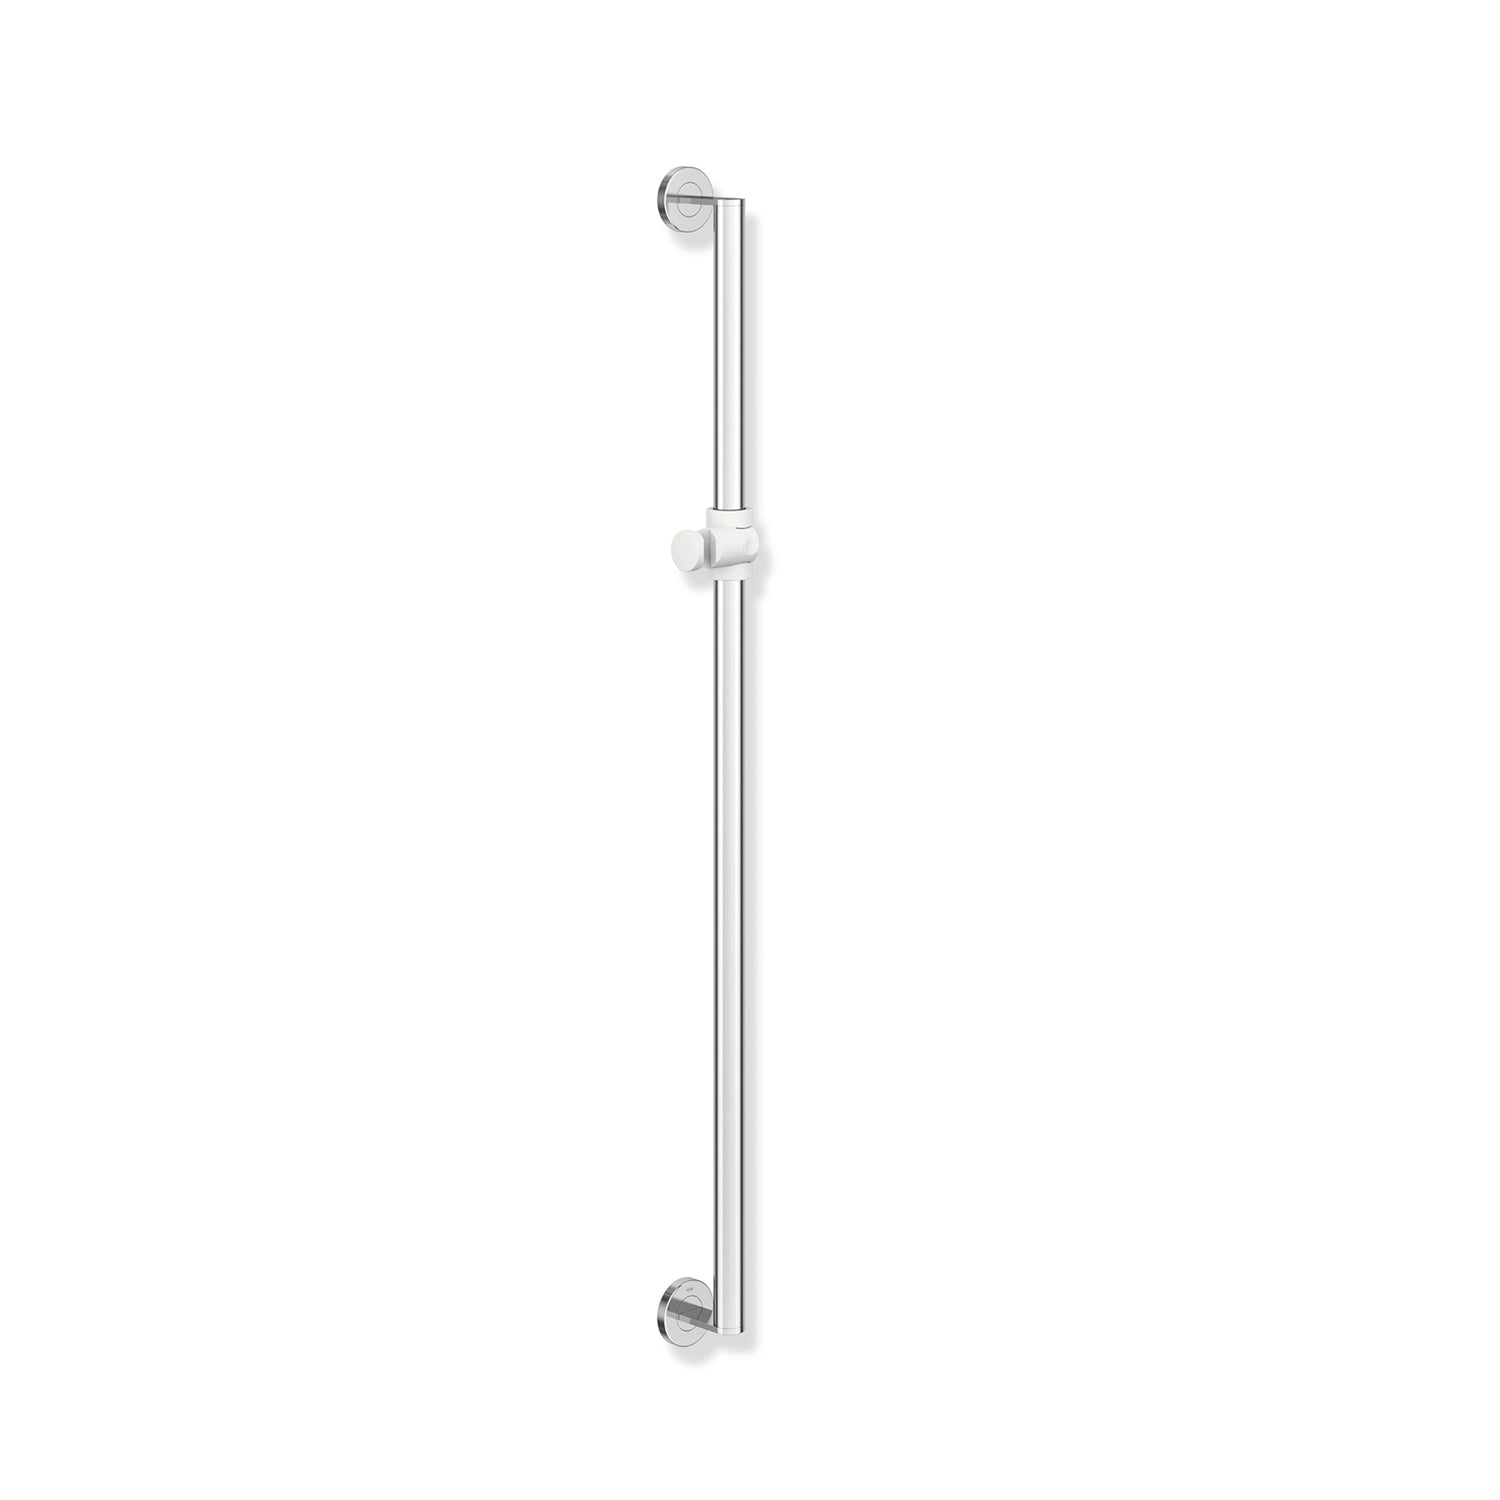 1100mm Freestyle Supportive Shower Rail with a chrome finish on a white background